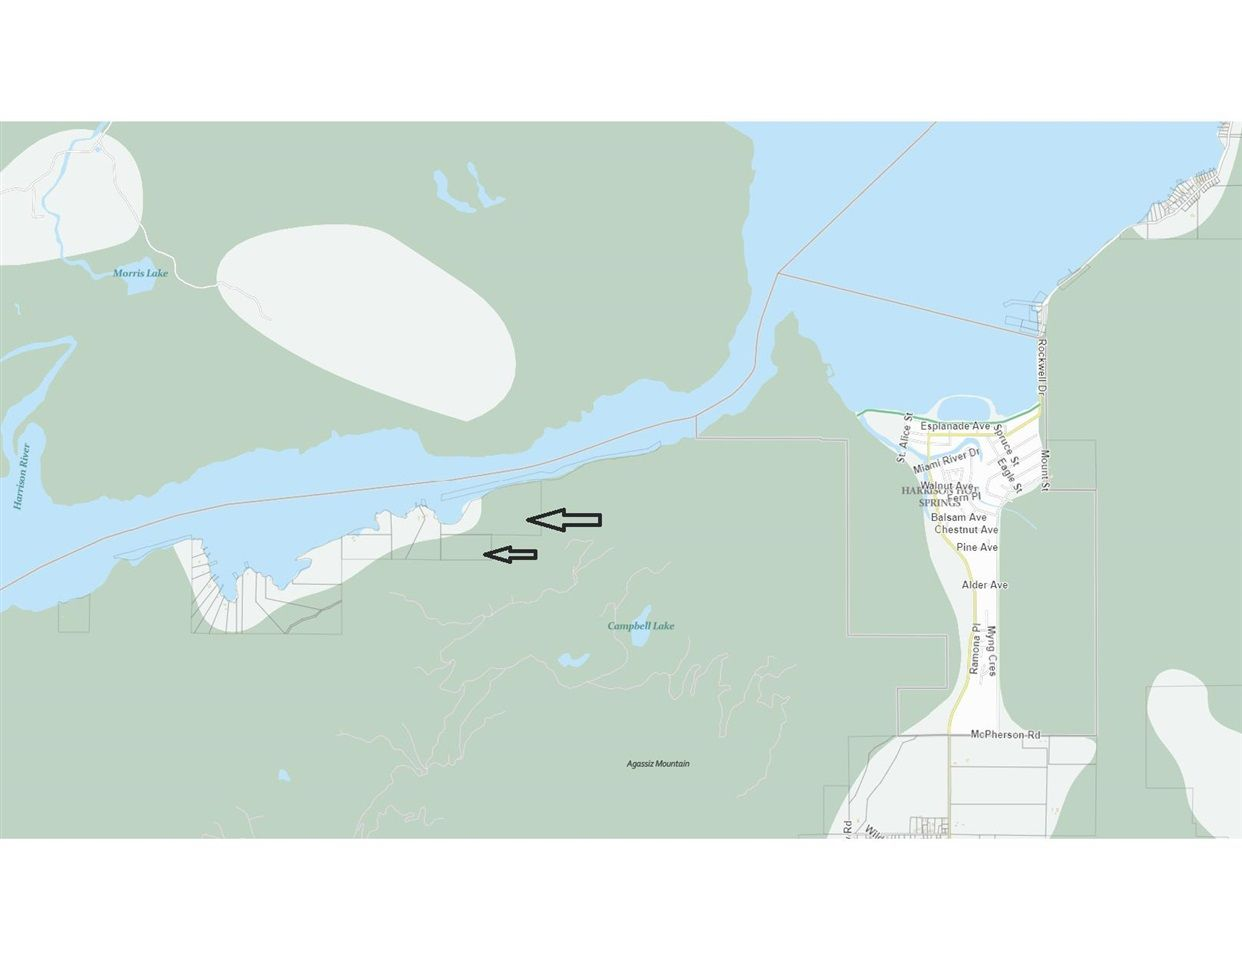 Main Photo: PORTION N 1/2 SUB 13 Common: Harrison Hot Springs Land for sale : MLS®# R2576486